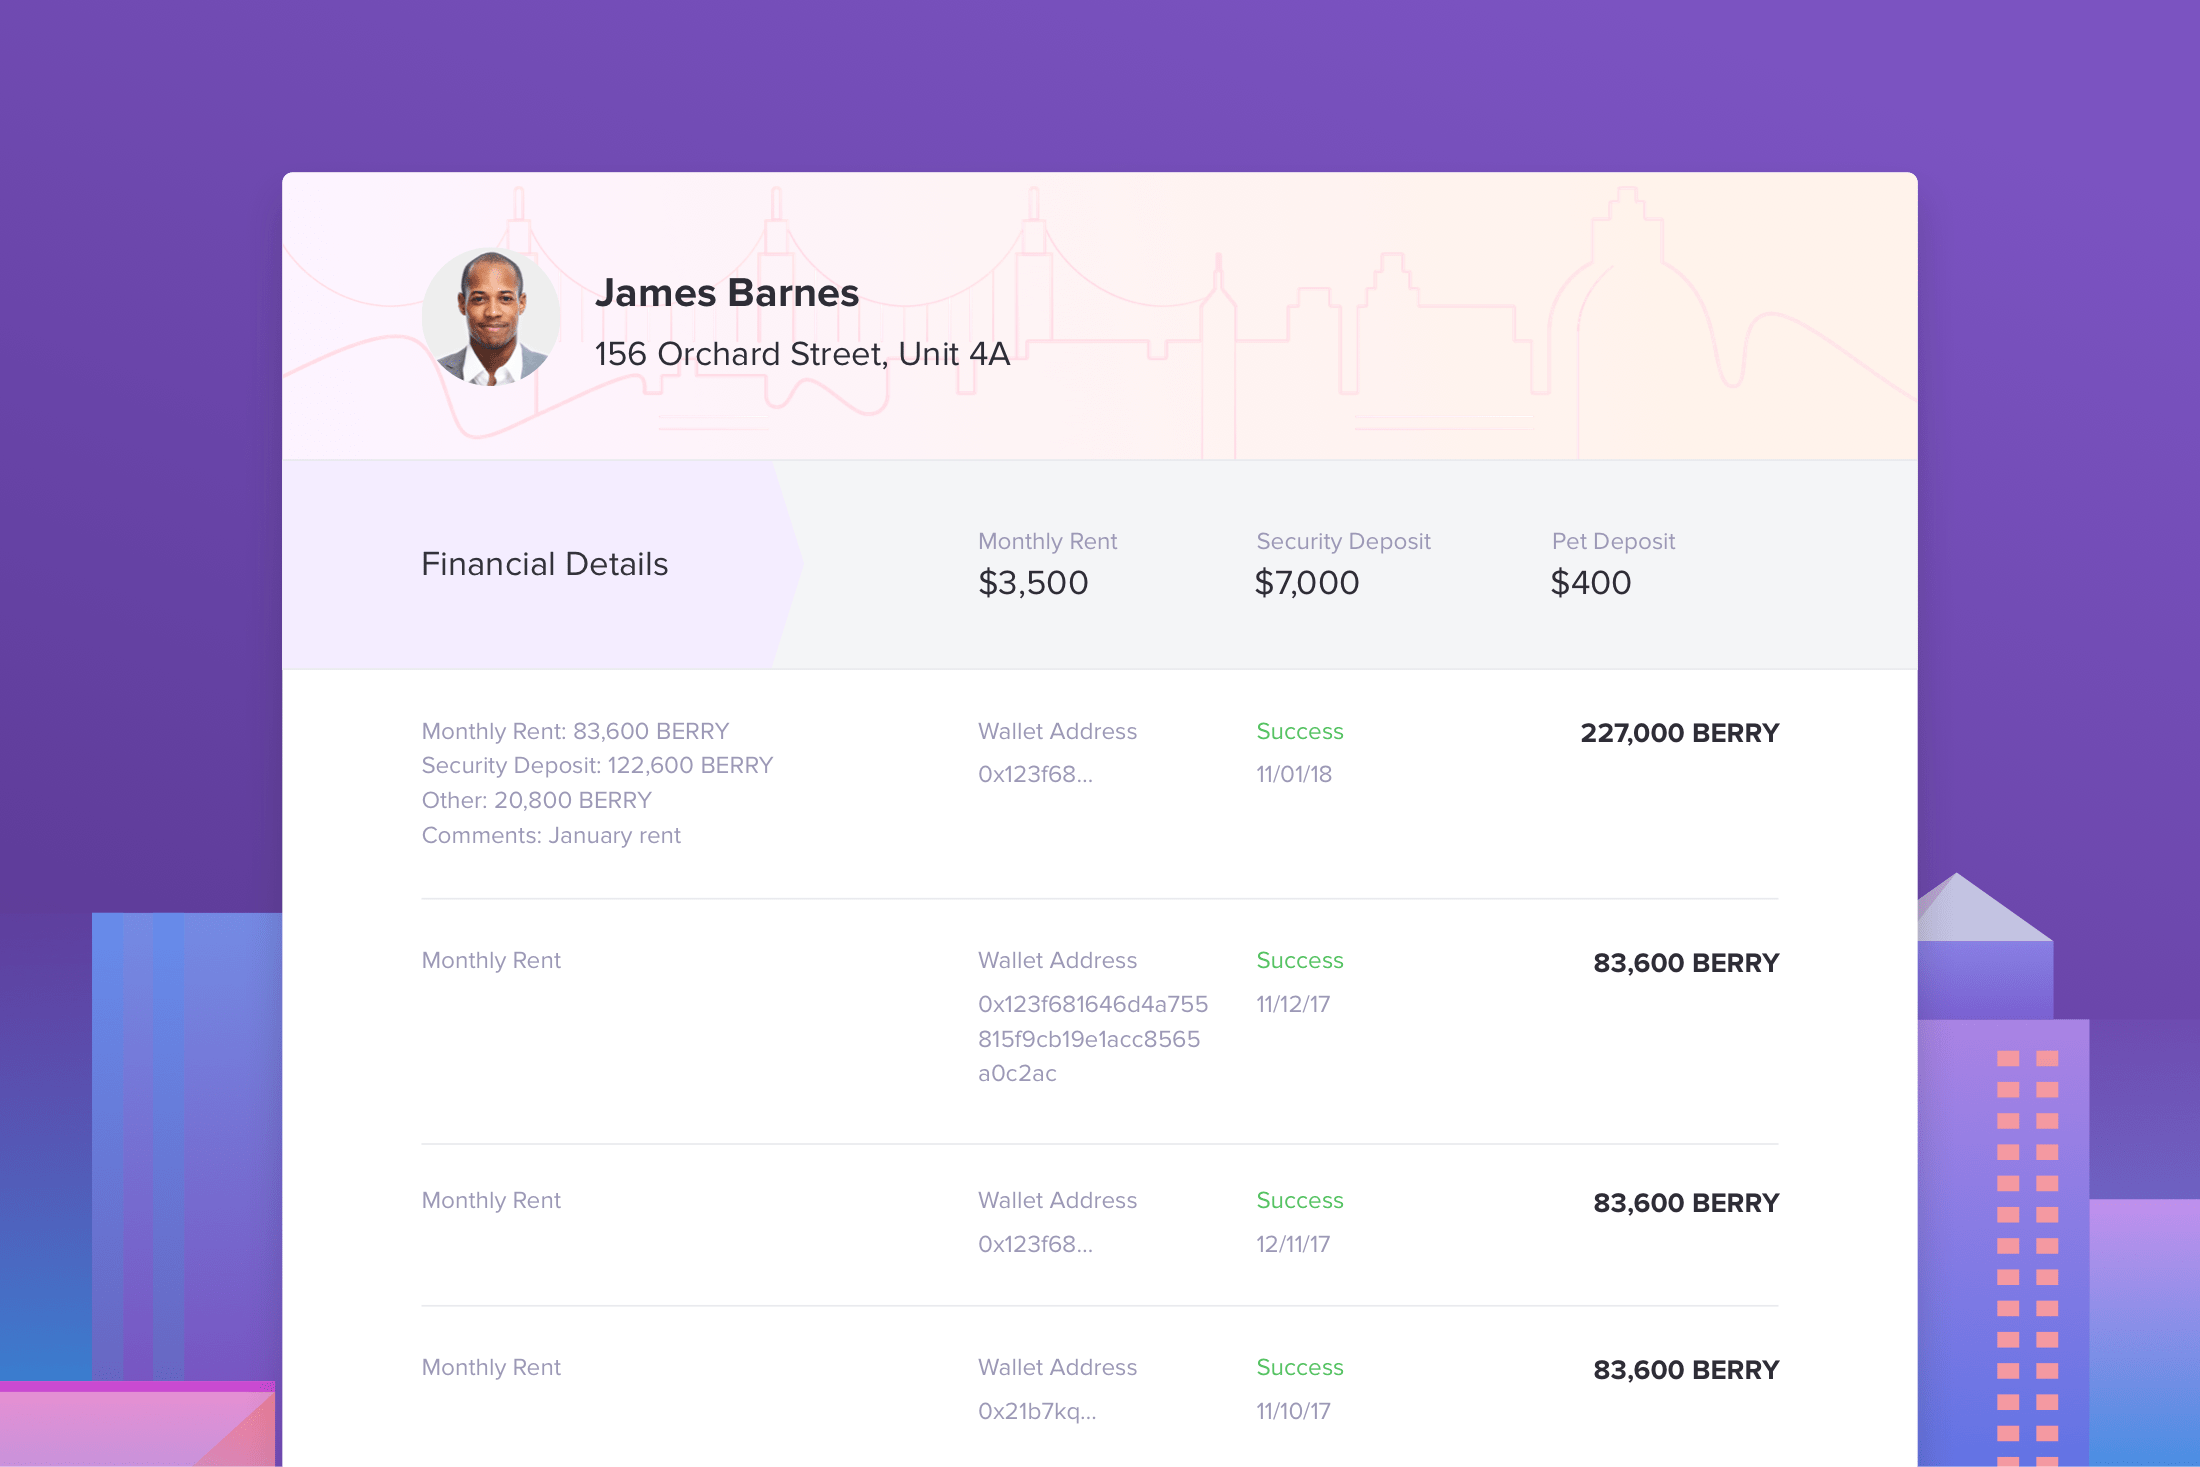 Berry payments history